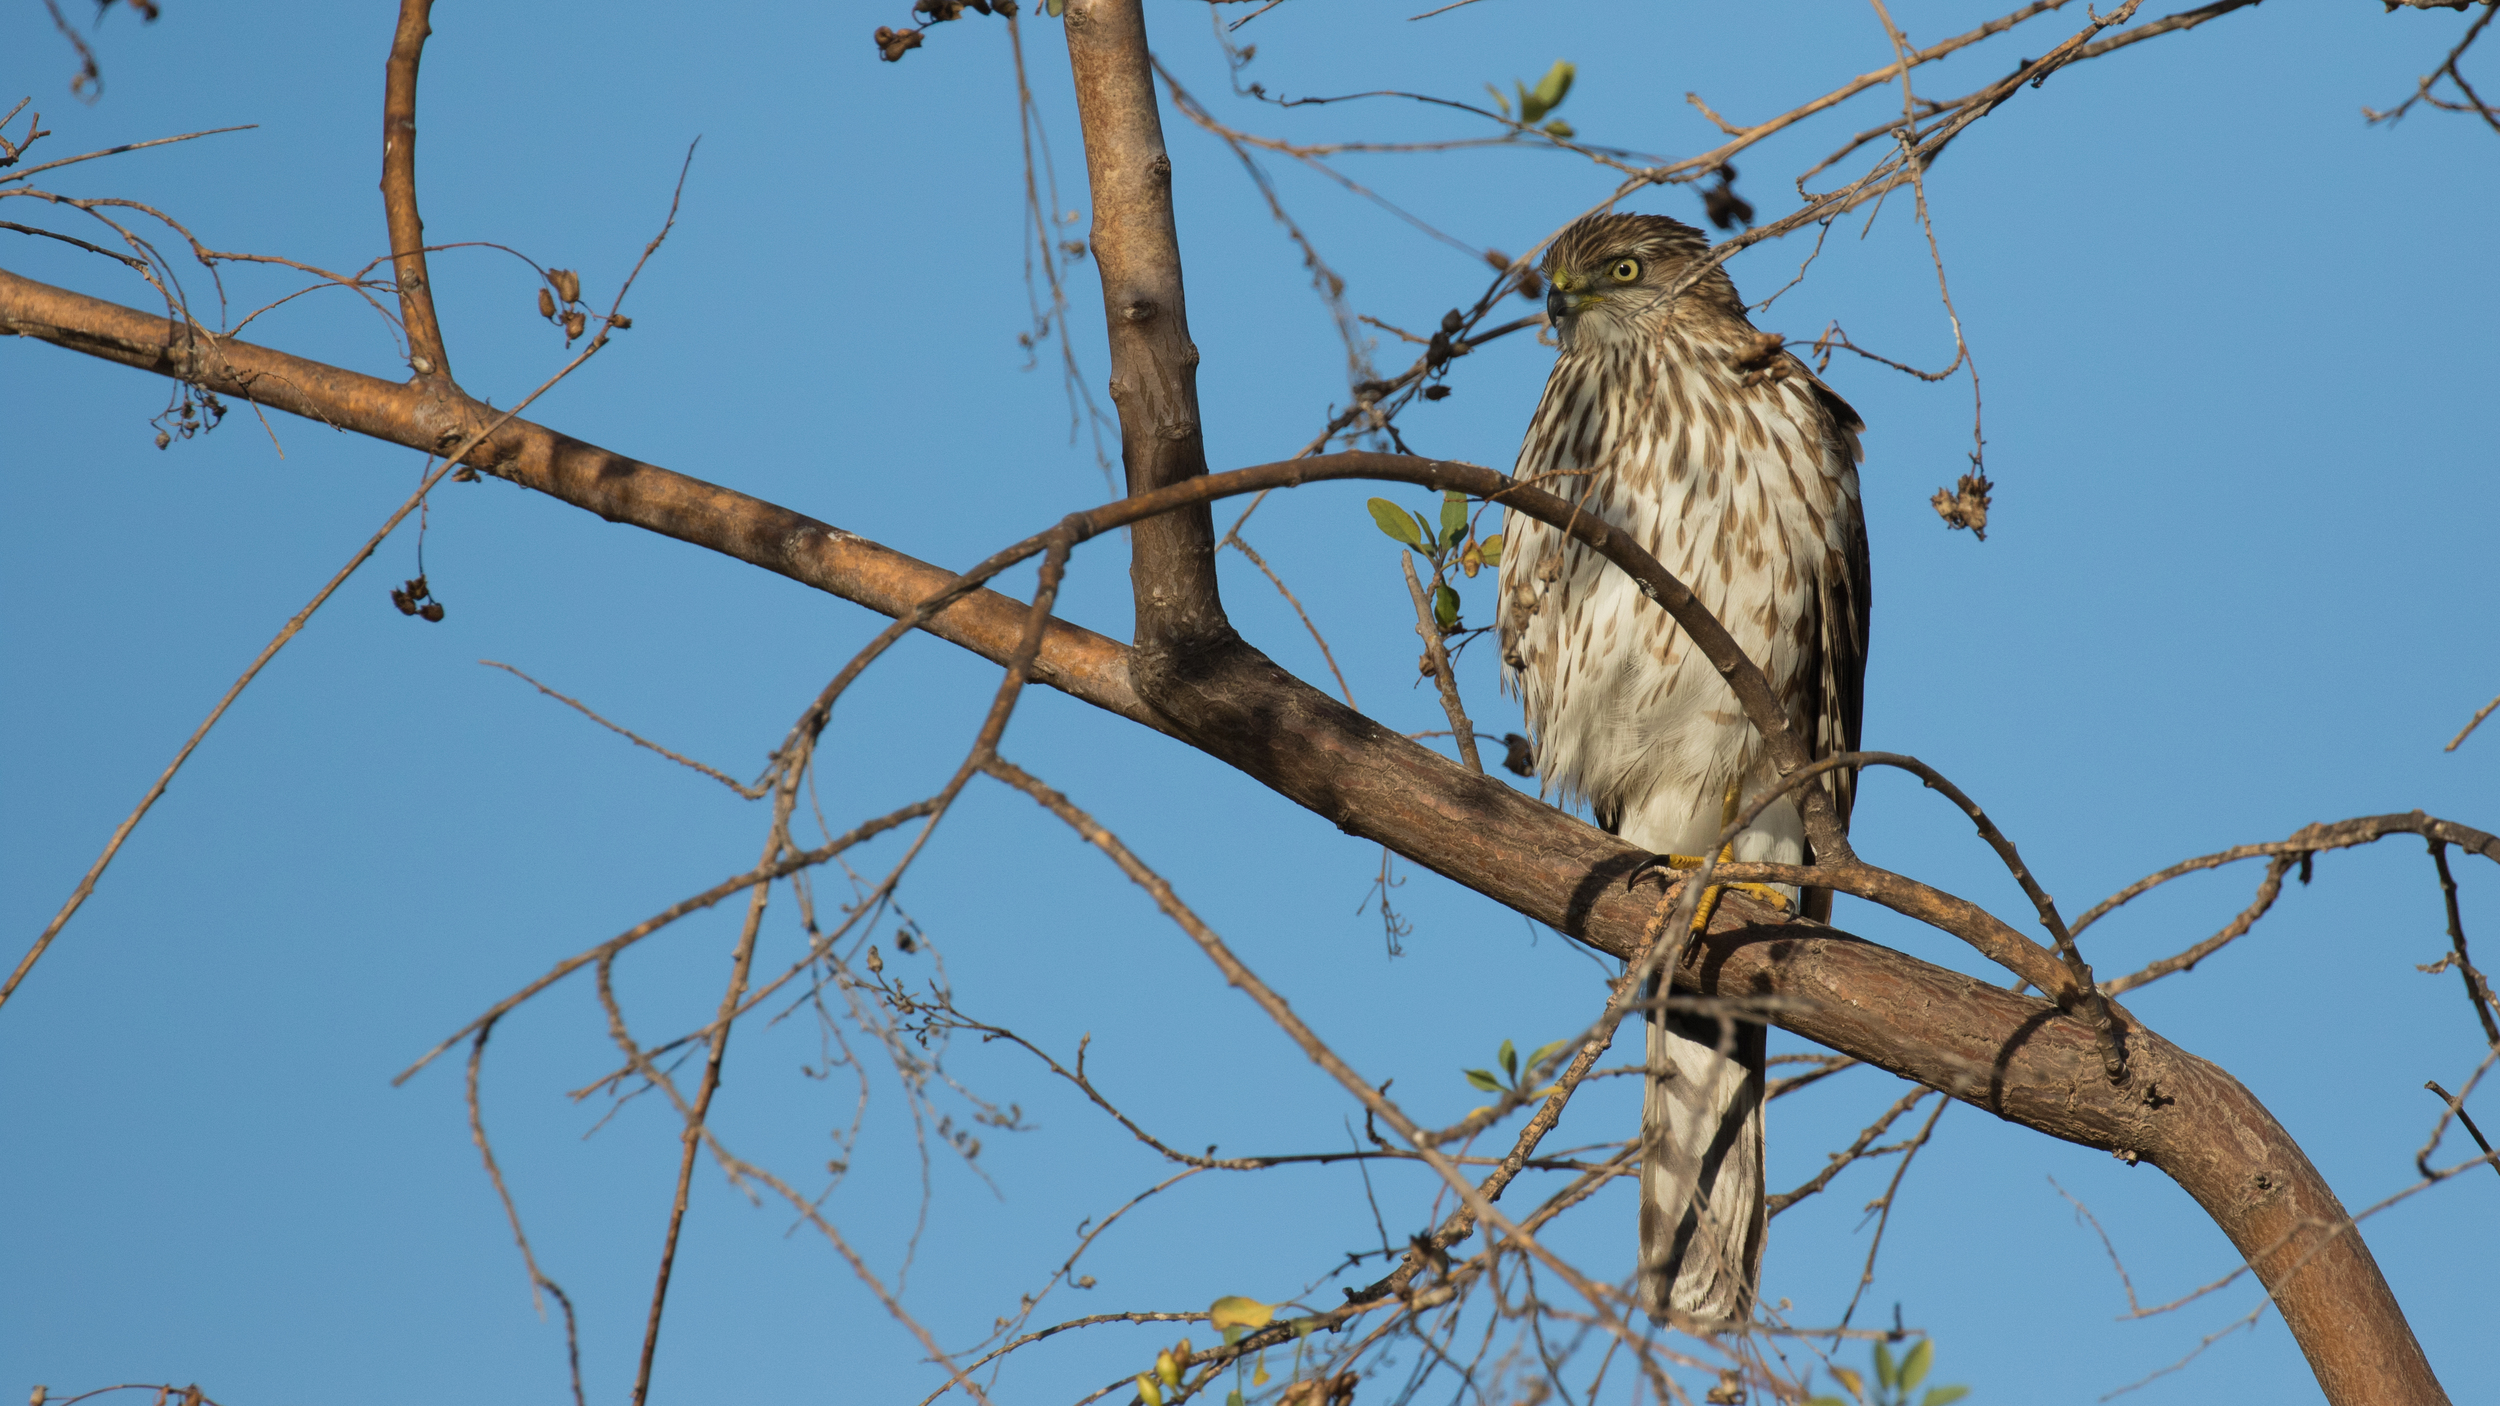 Cooper's Hawk (Accipiter cooperii) in Dana Point, California. December 2015. Not baited. Not called in.